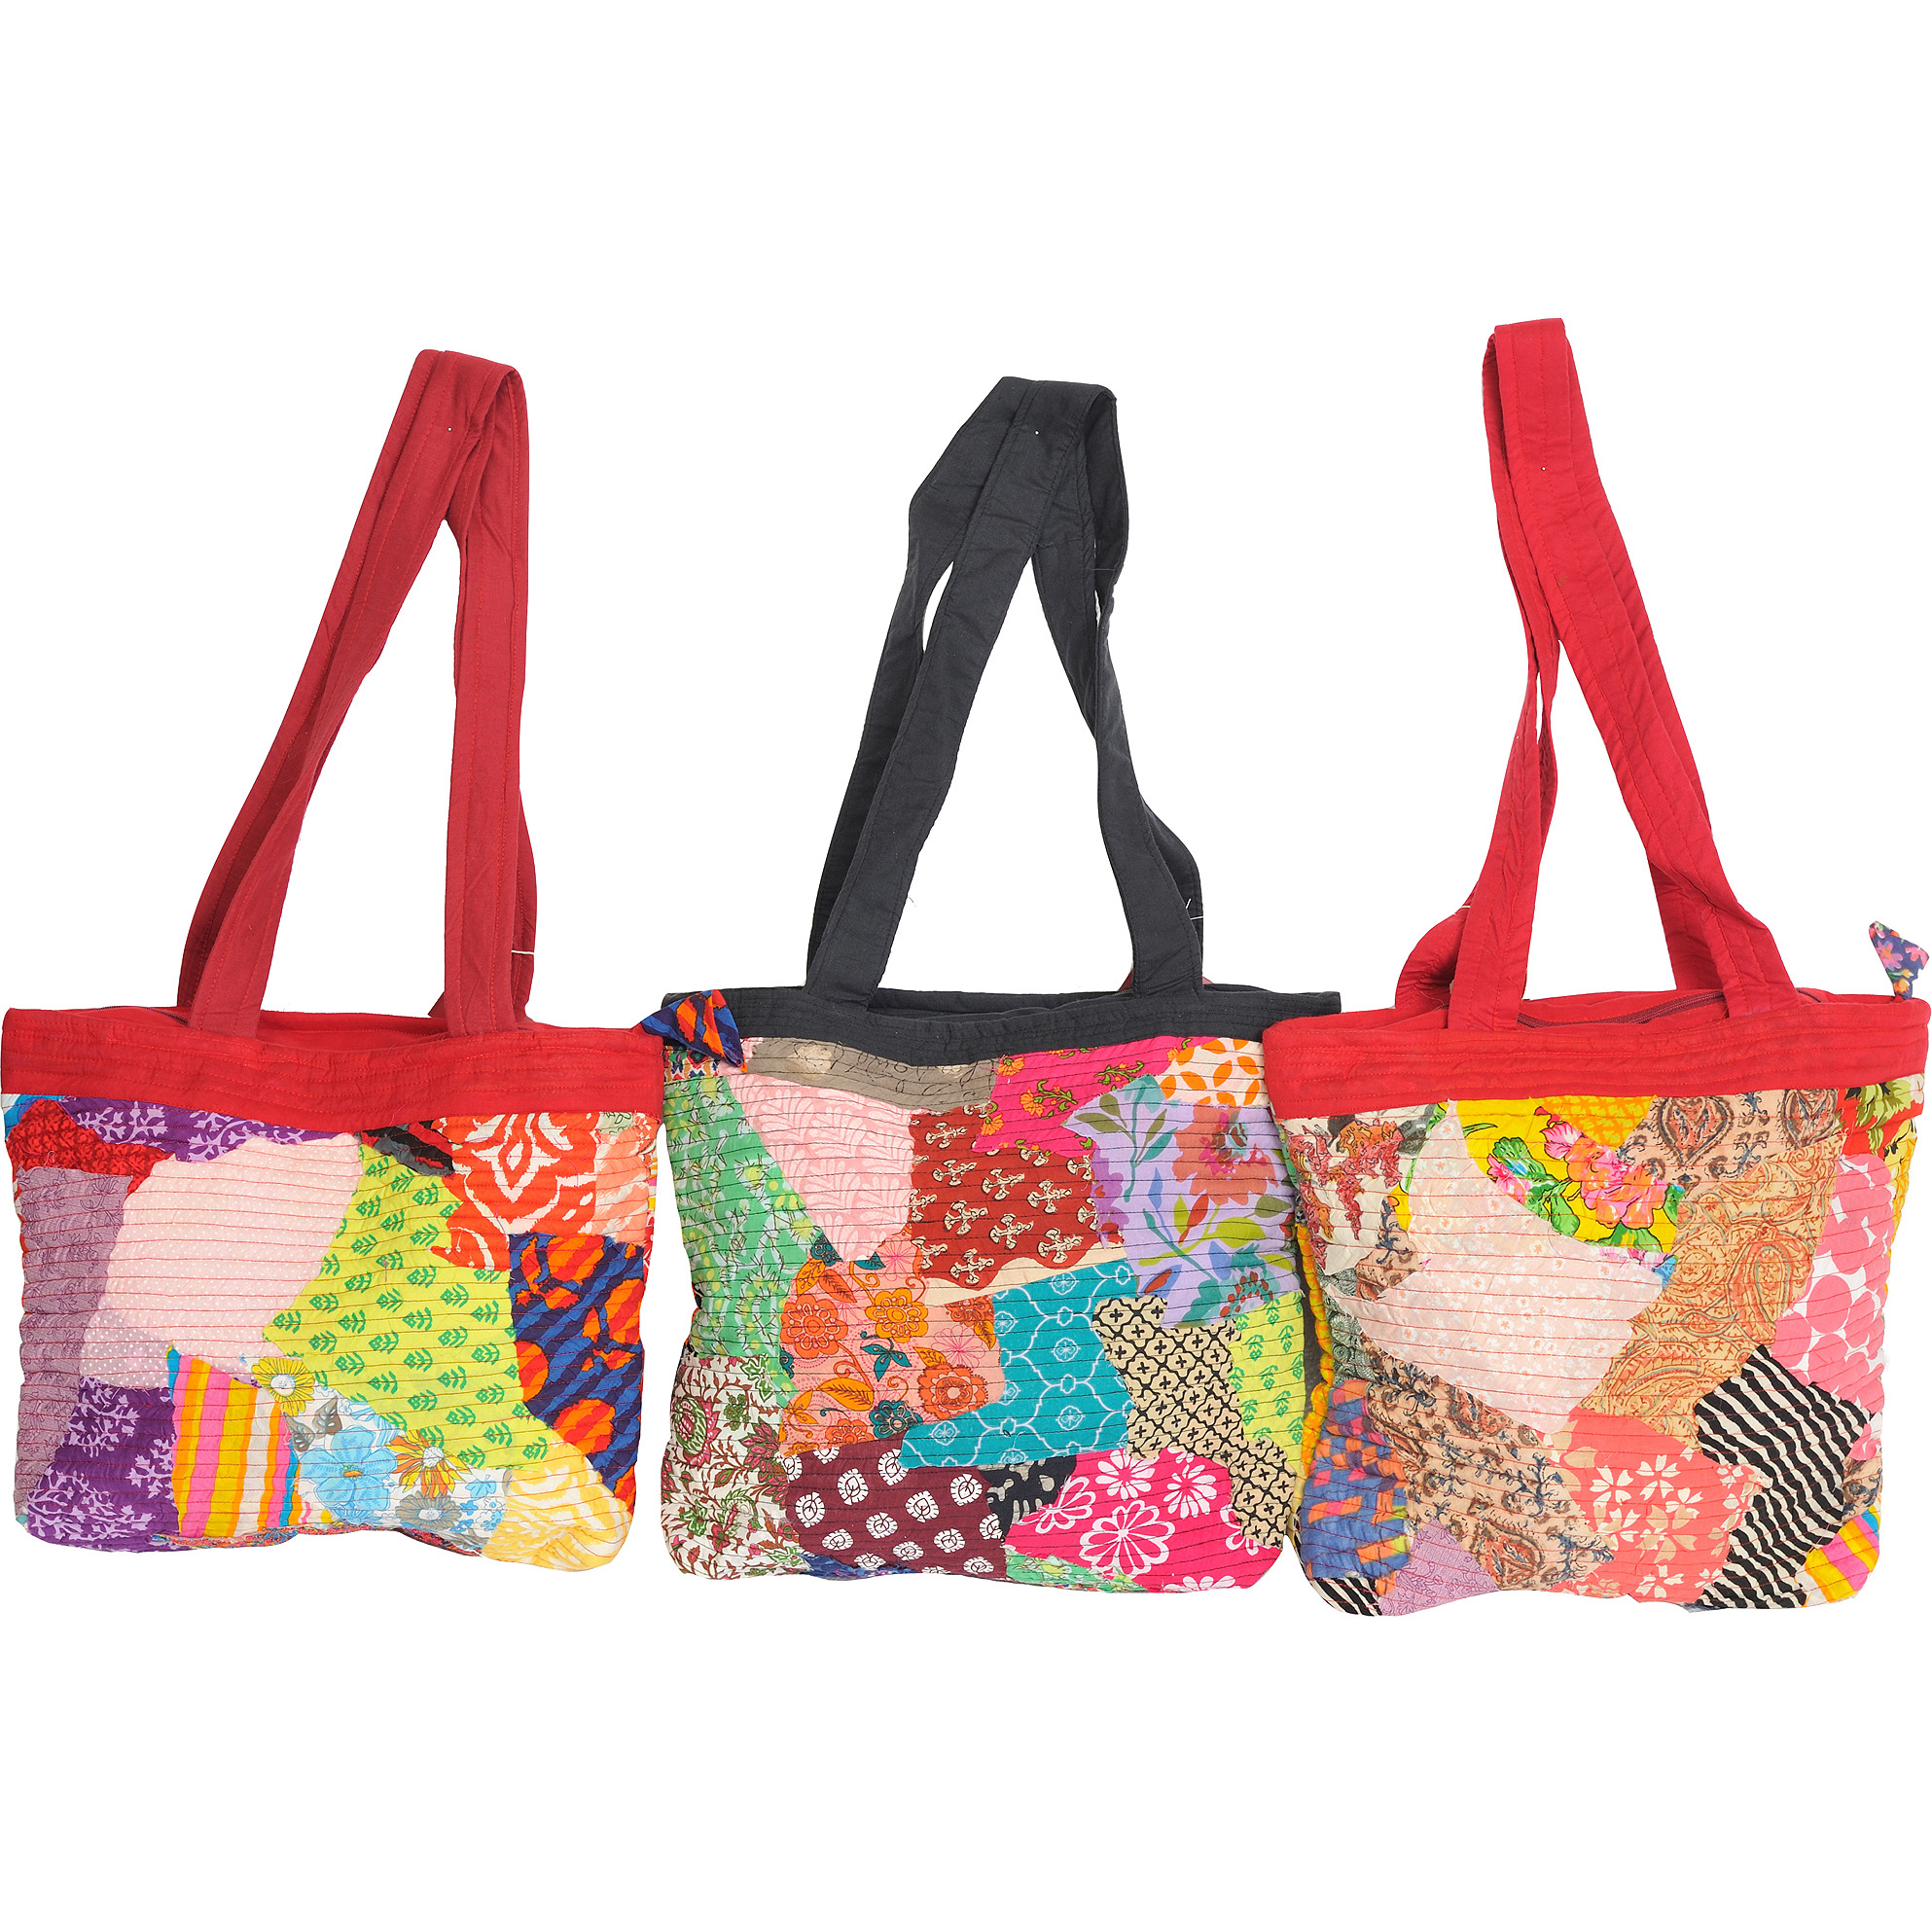 Lot of Three Multicolor Shopper Bags with Patchwork